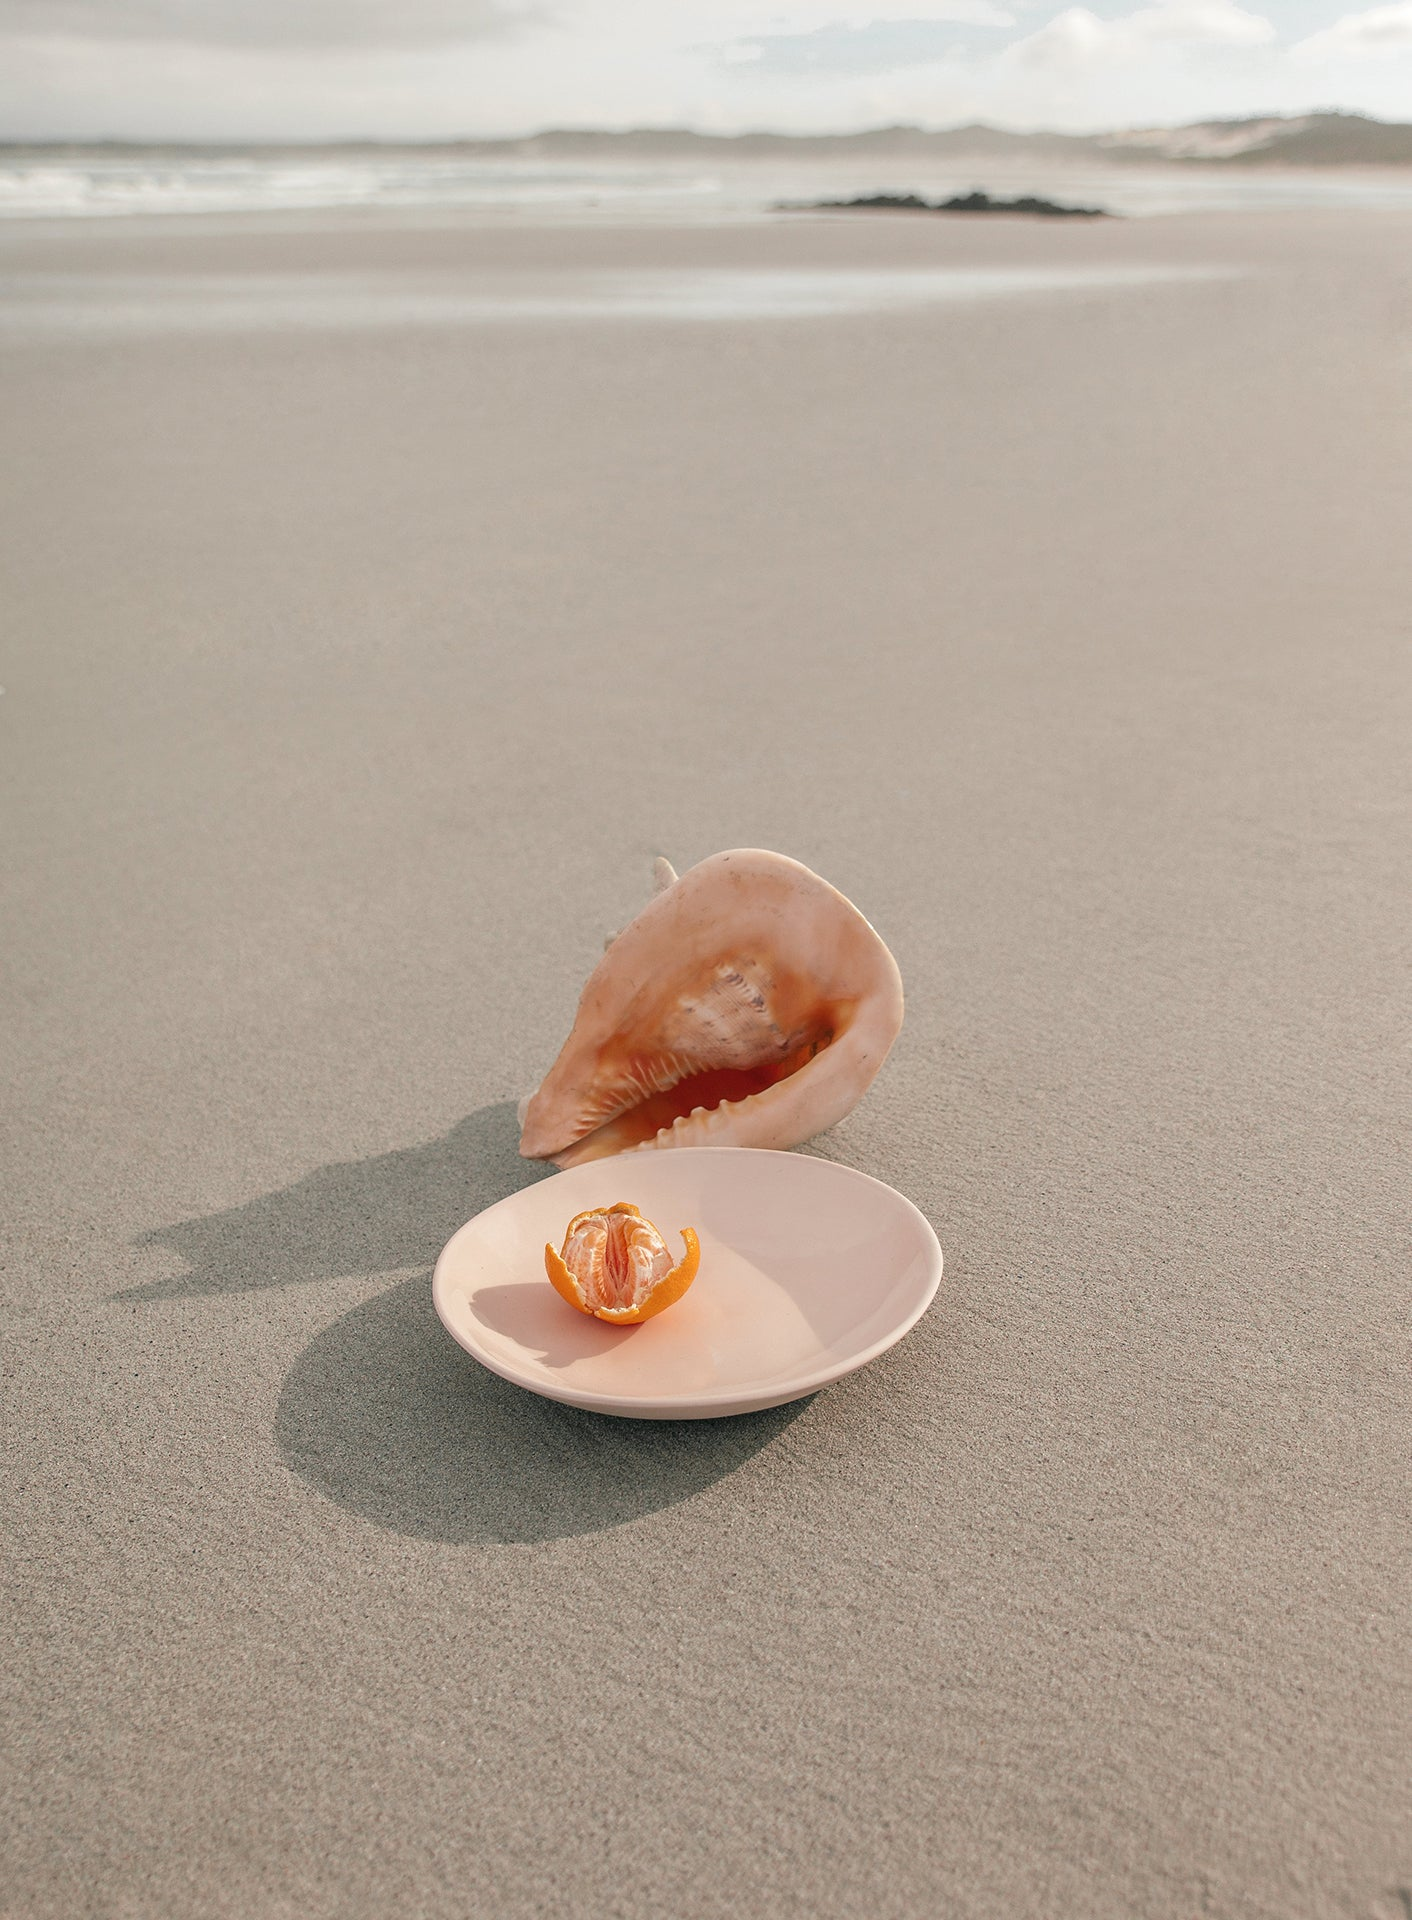 Theodore Afrika - Still Symmetry 08 - Print of a pink and orange shell alongside a place containing a naartjie.